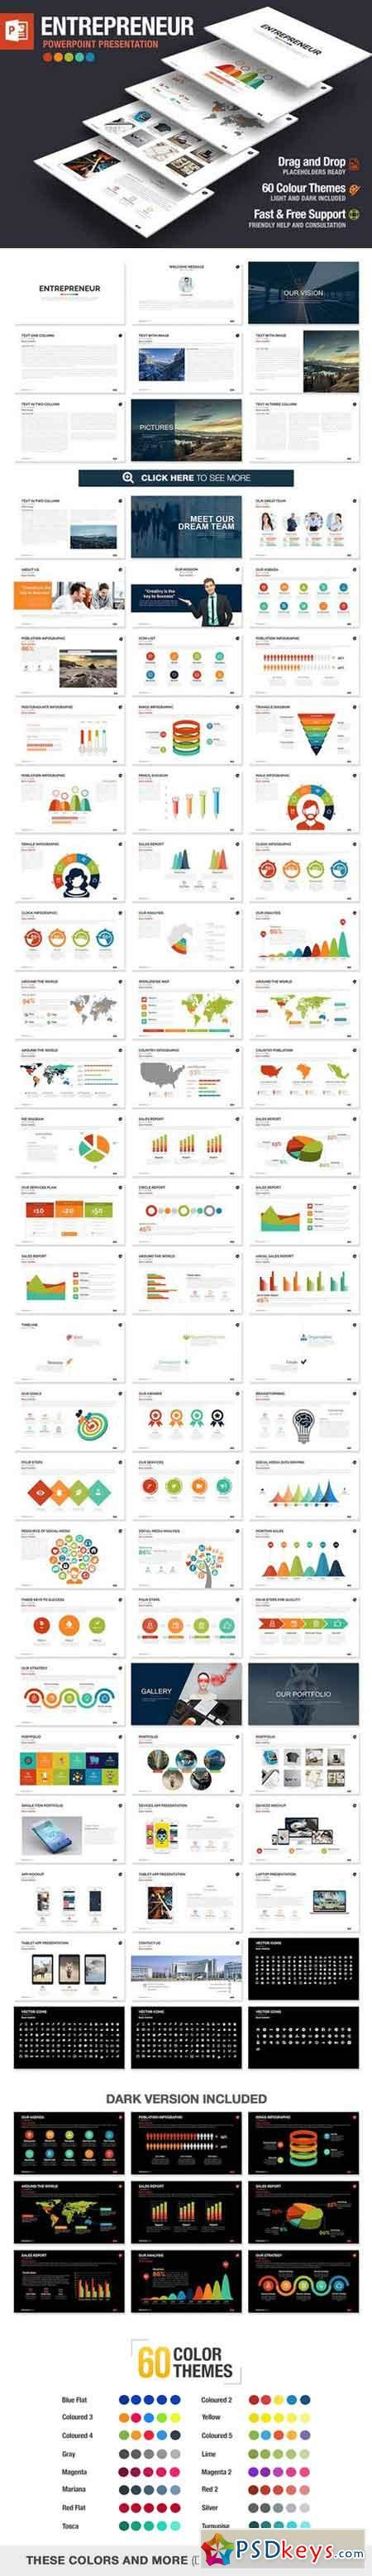 Entrepreneur Powerpoint Template 514938 187 Free Download Powerpoint Template Torrent